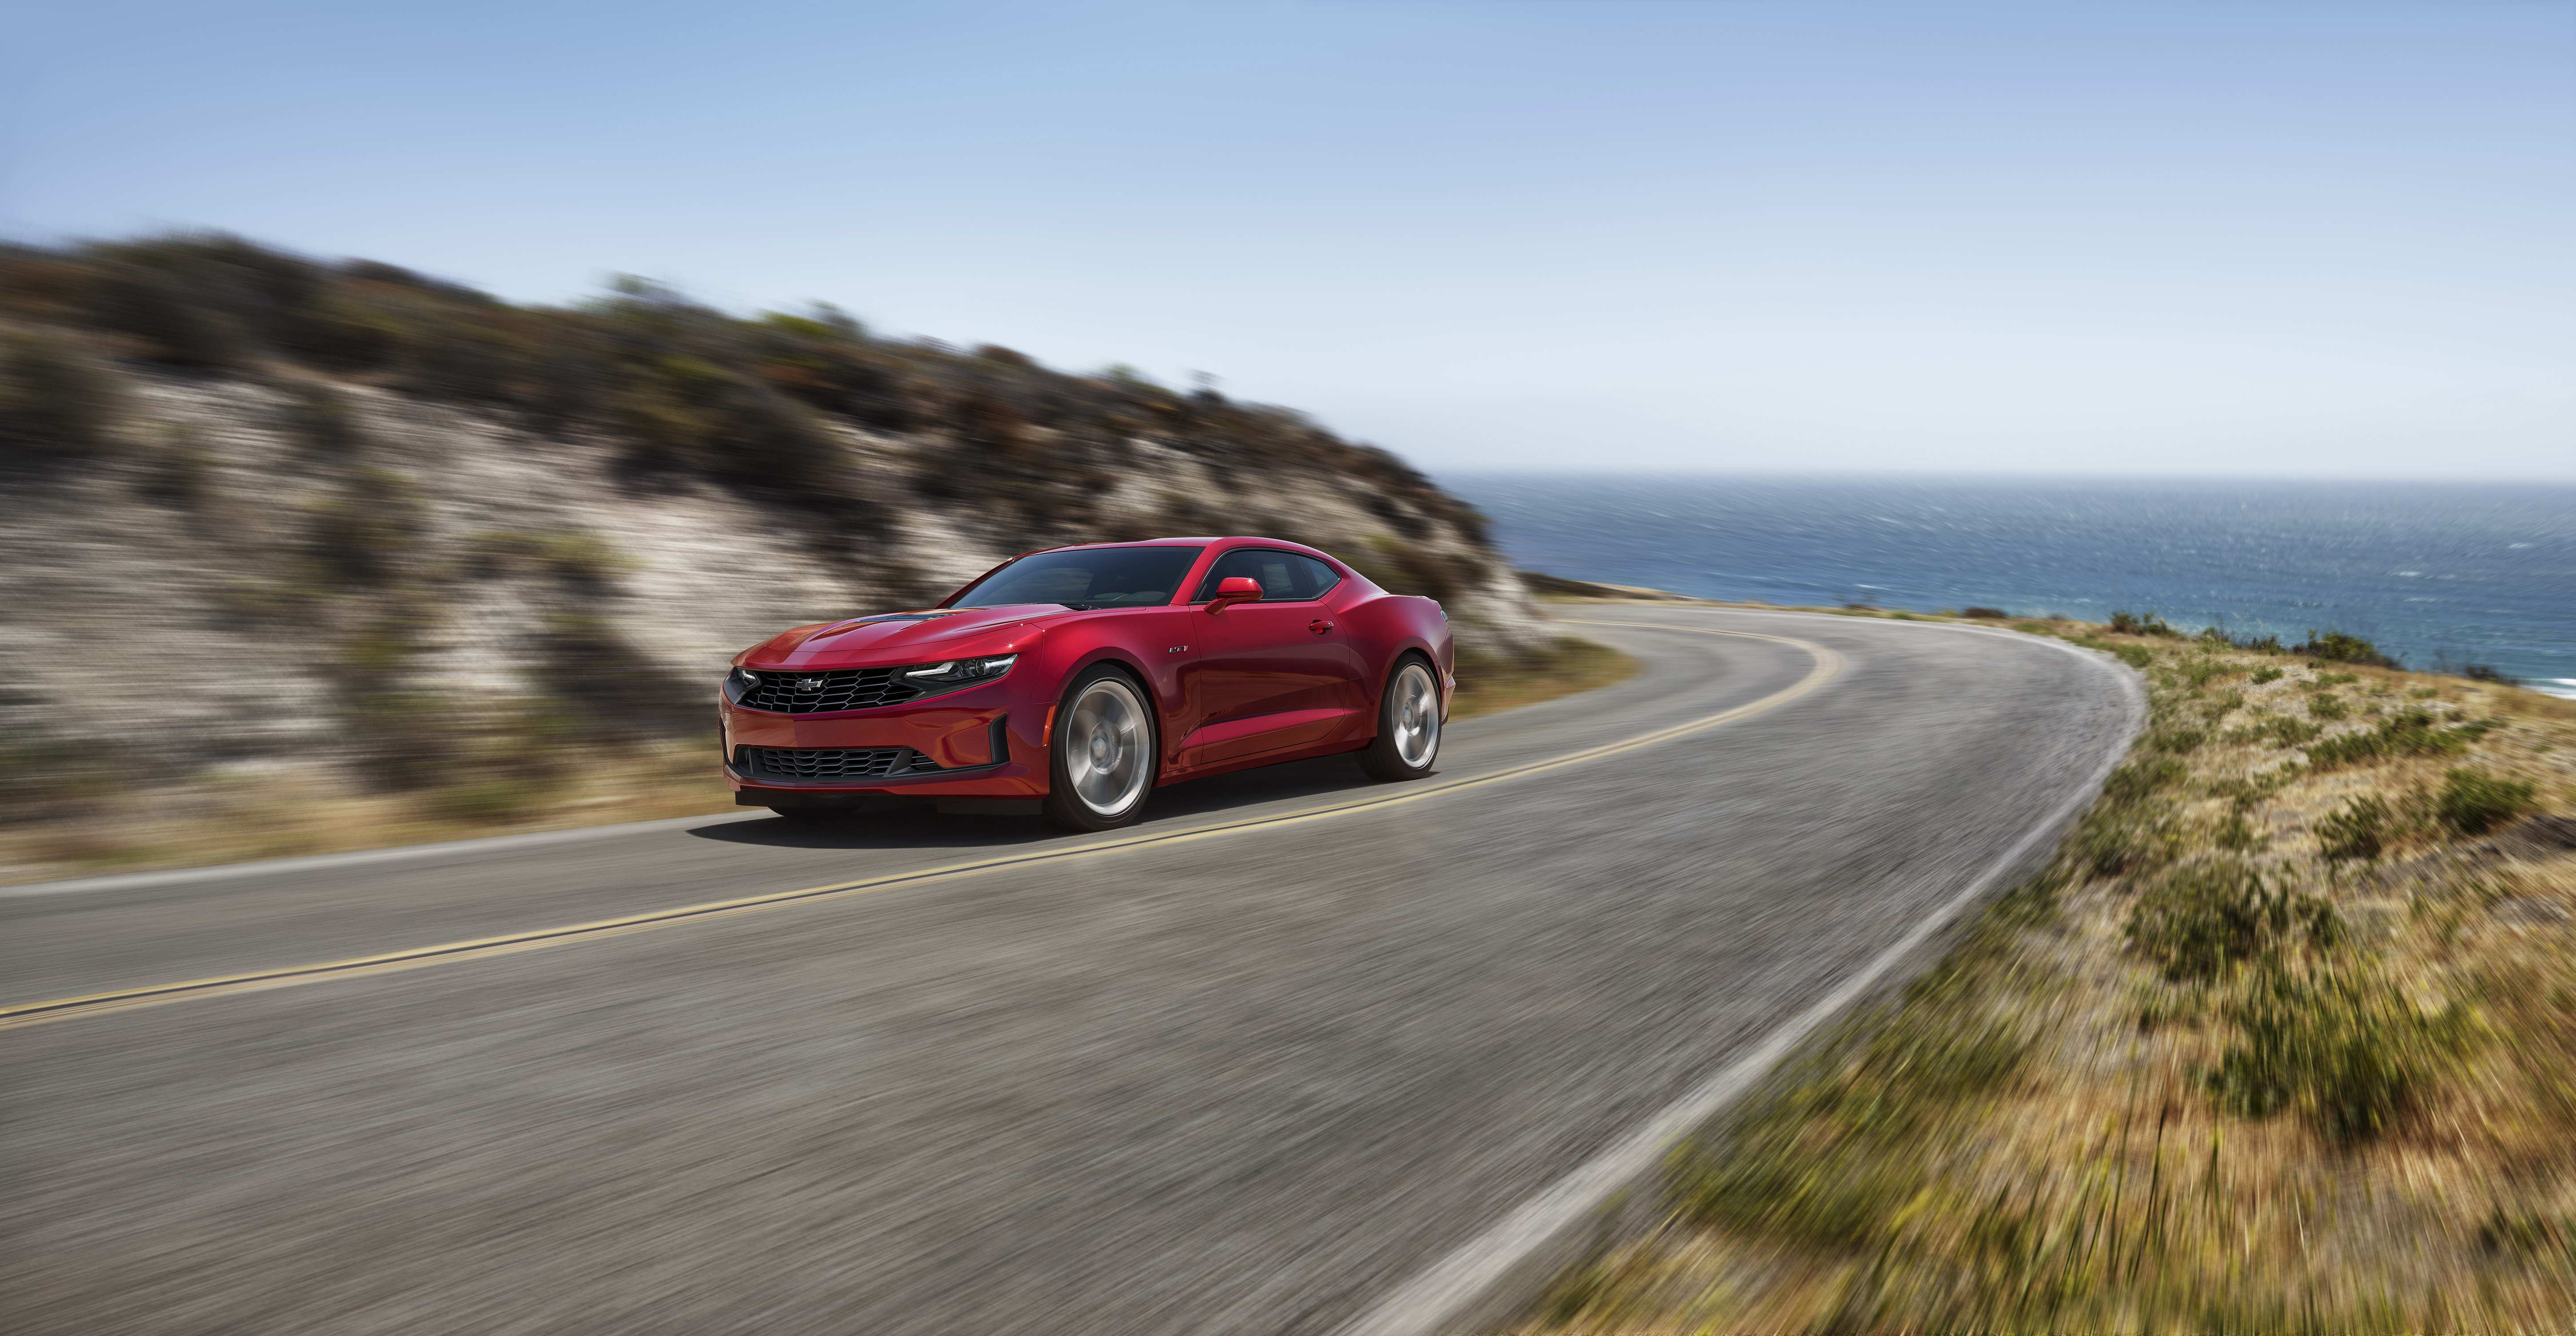 21 All New 2020 The All Chevy Camaro Speed Test